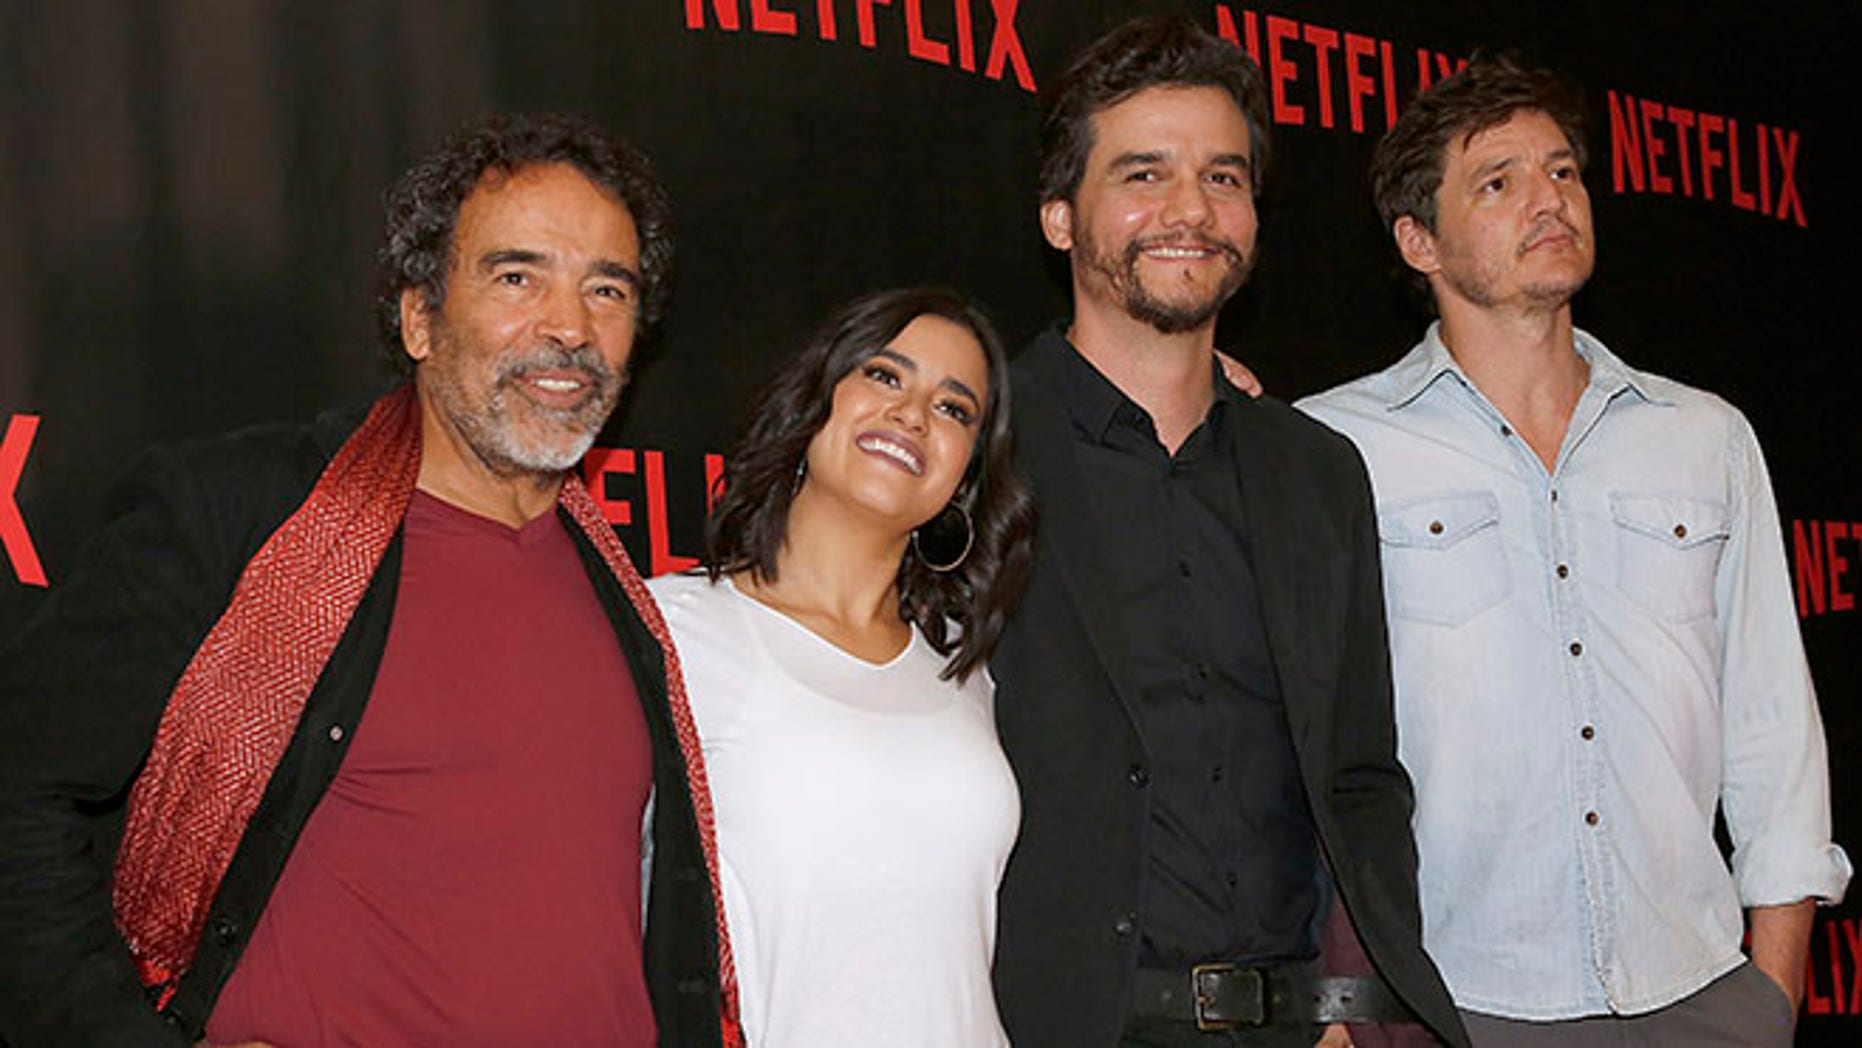 """Damian Alcazar, from left to right, who plays the role of a Cali druglord named Gilberto Orejuela in the Netflix series """"Narcos"""", Paulina Gaitan, who plays the character of Pablo Escobar's wife Tata, Wagner Moura, who plays the role of Pablo Escobar, and, Pedro Pascal, who plays the role of a DEA agent named Javier Peña, pose for photos during a media call to promote their second season, in Mexico City, Tuesday, Aug. 16, 2016. """"Narcos"""" the Netflix series about the history of the cocaine route presents the downfall of Pablo Escobar in its second season premiering worldwide on Sept.2. (AP Photo/Marco Ugarte)"""